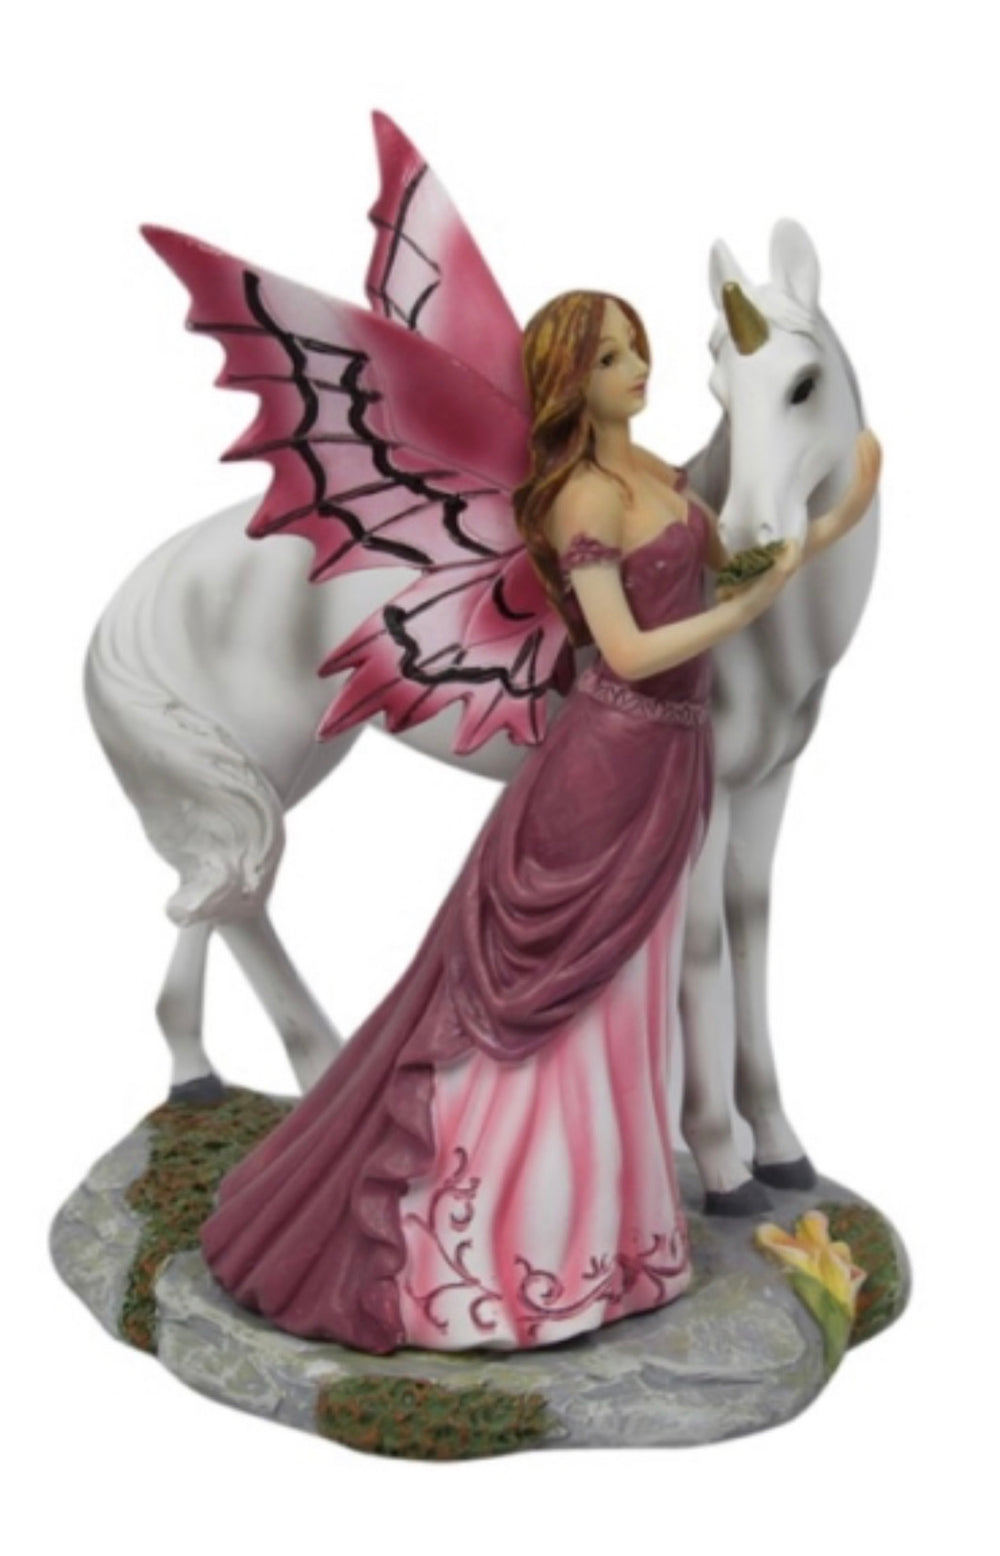 Mystical Friend Figurine